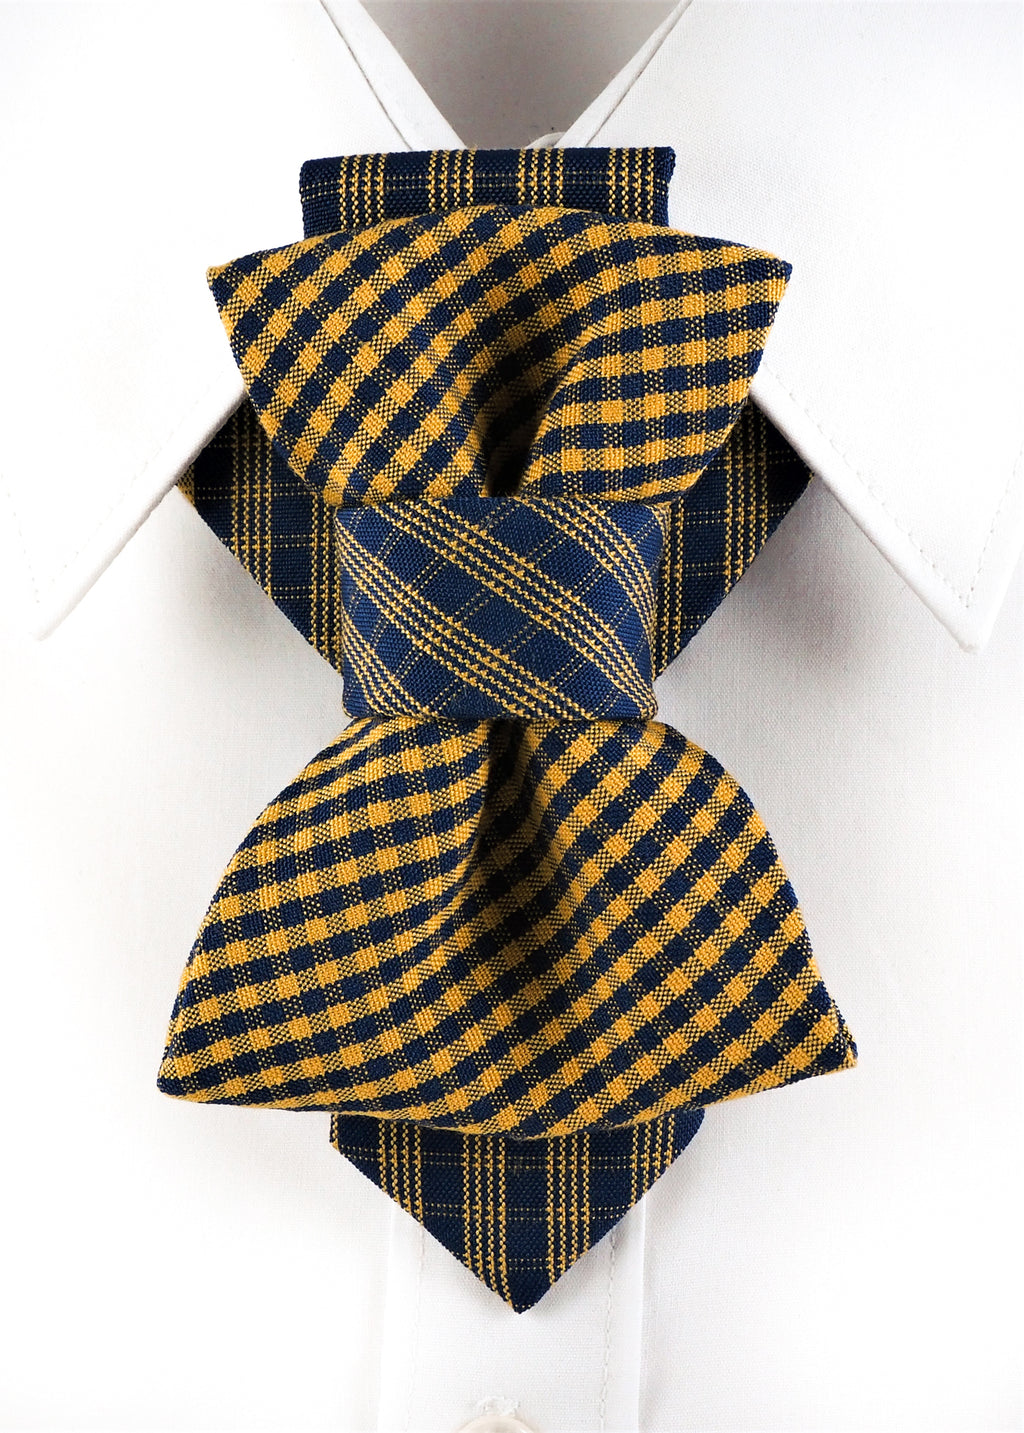 Bow Tie, Tie for wedding suite SUNDAY hopper tie Bow tie